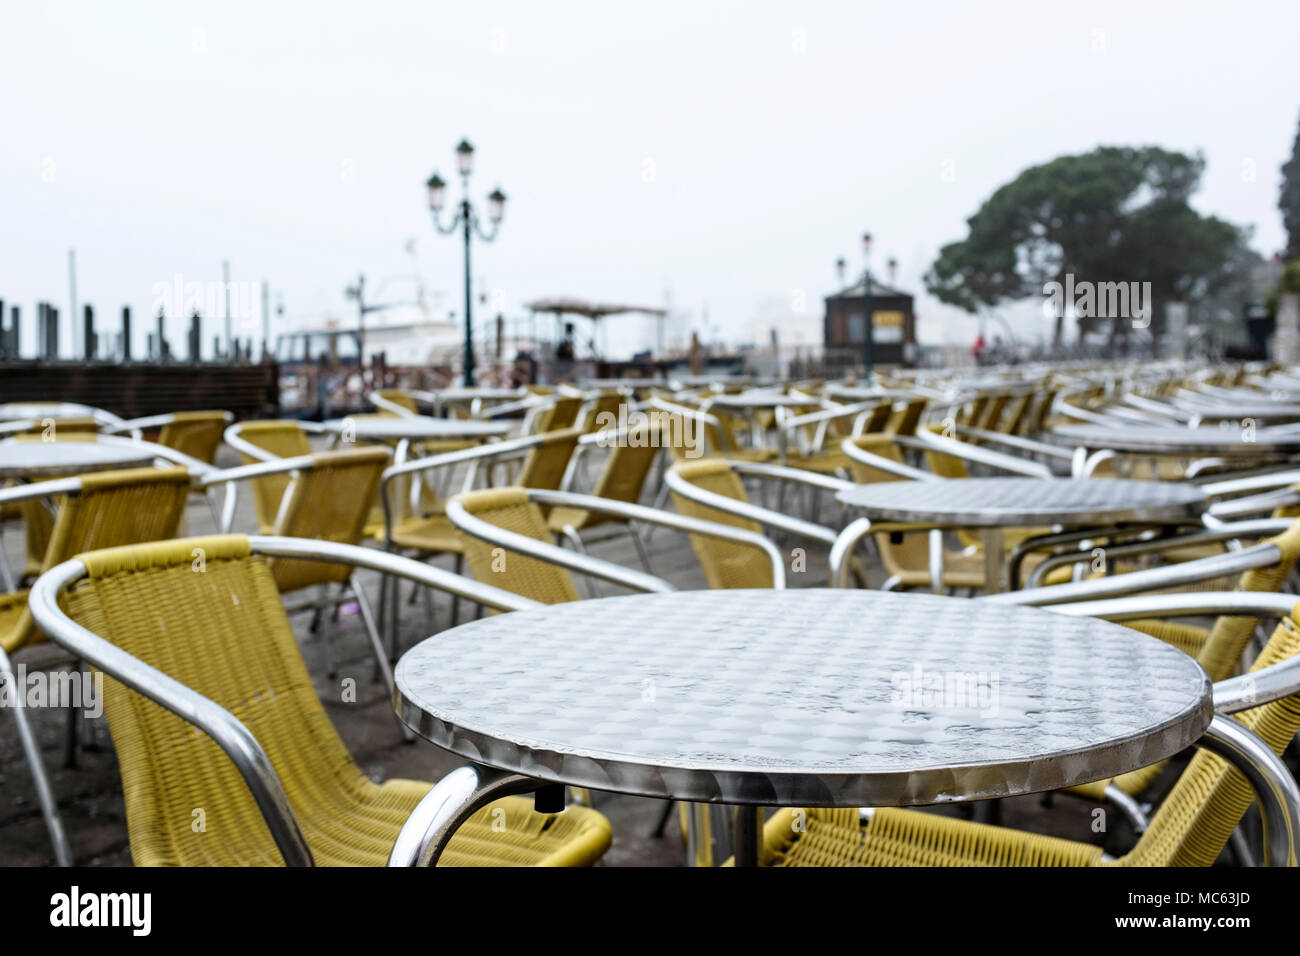 Abandoned chairs of a cafe on a rainy day in Venice, Italy, 2018 - Stock Image